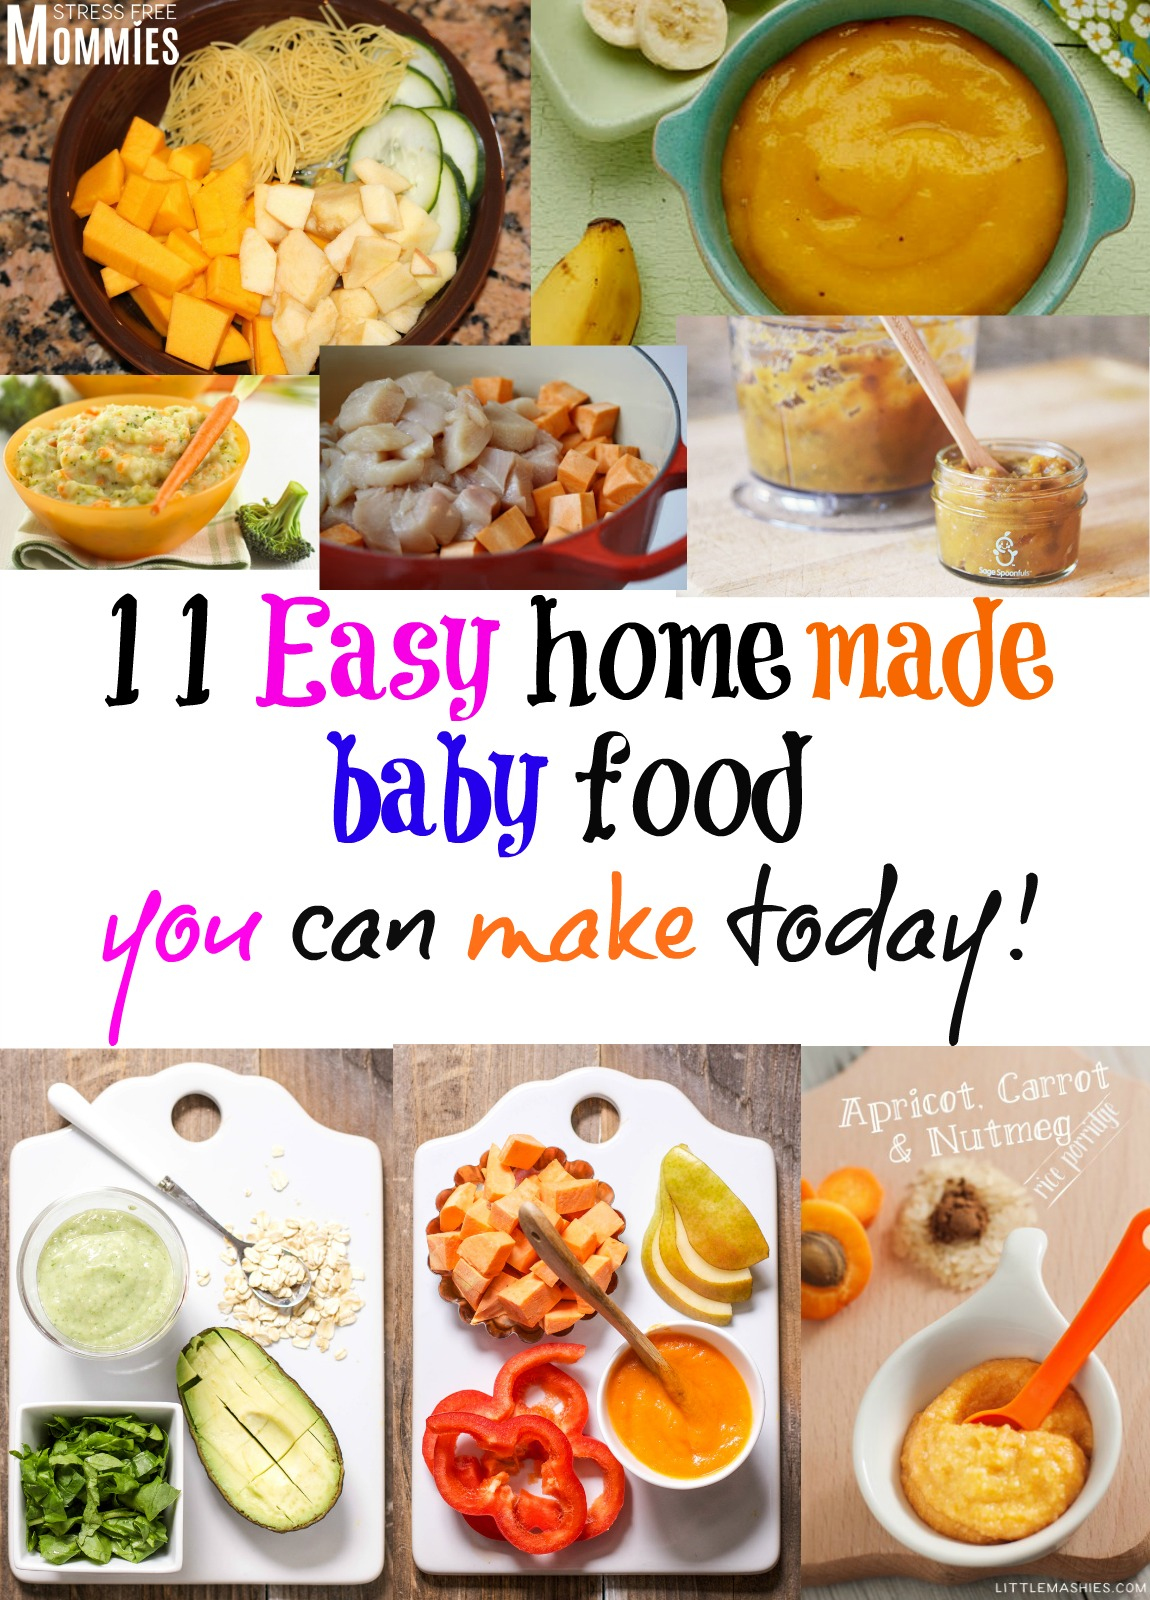 11 easy homemade baby food you can make today - Stress Free Mommies